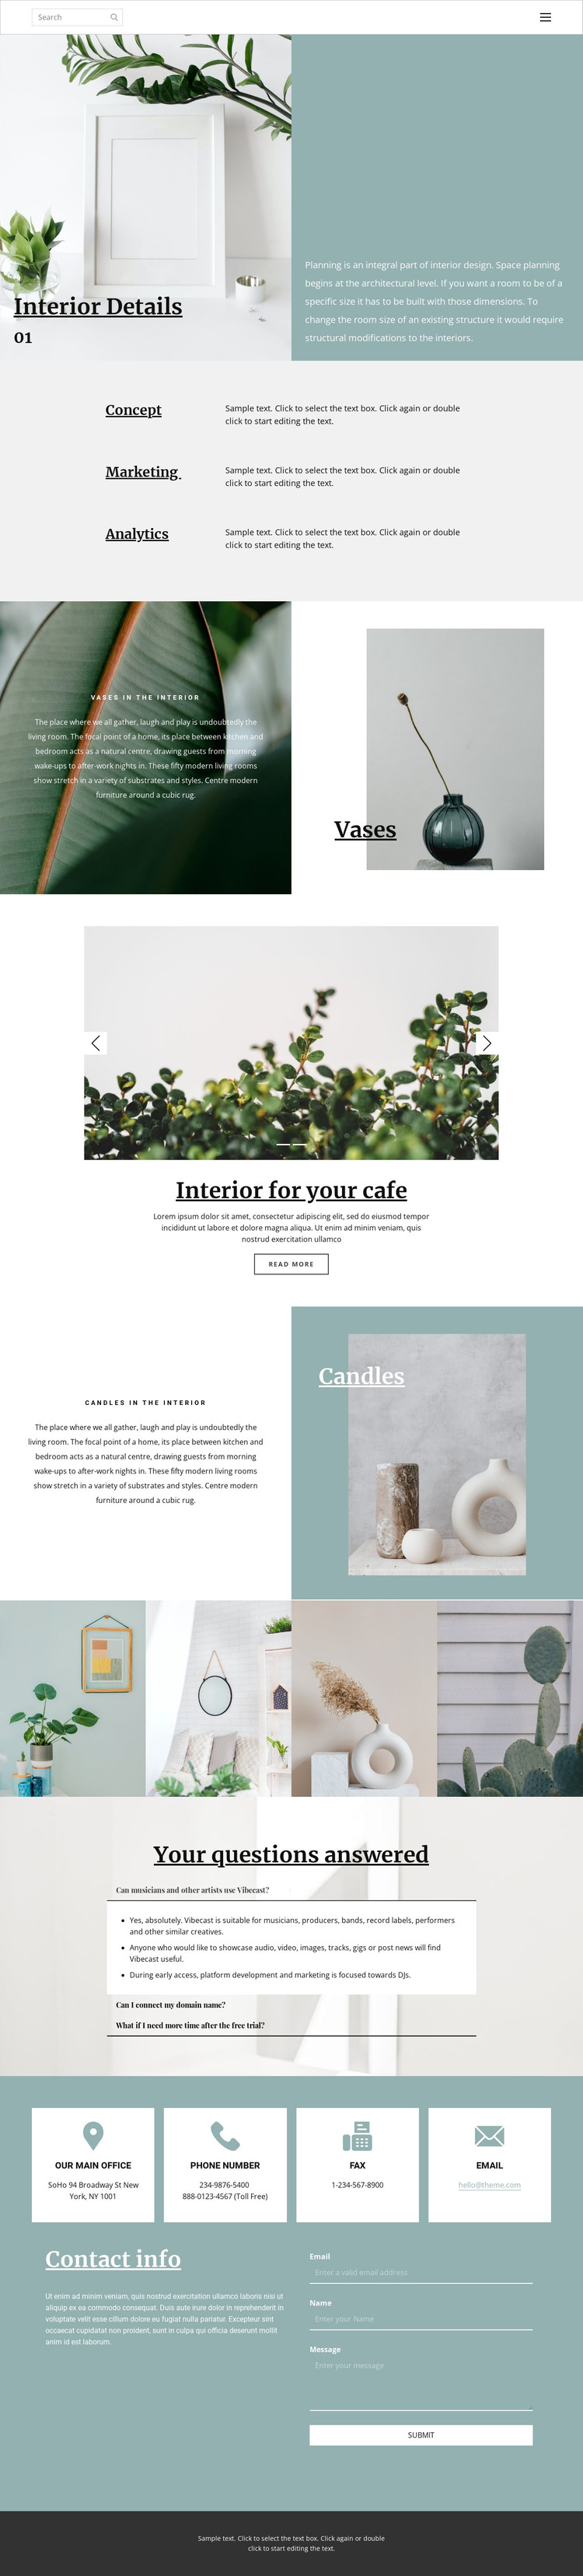 Help in organizing the space at home HTML Template